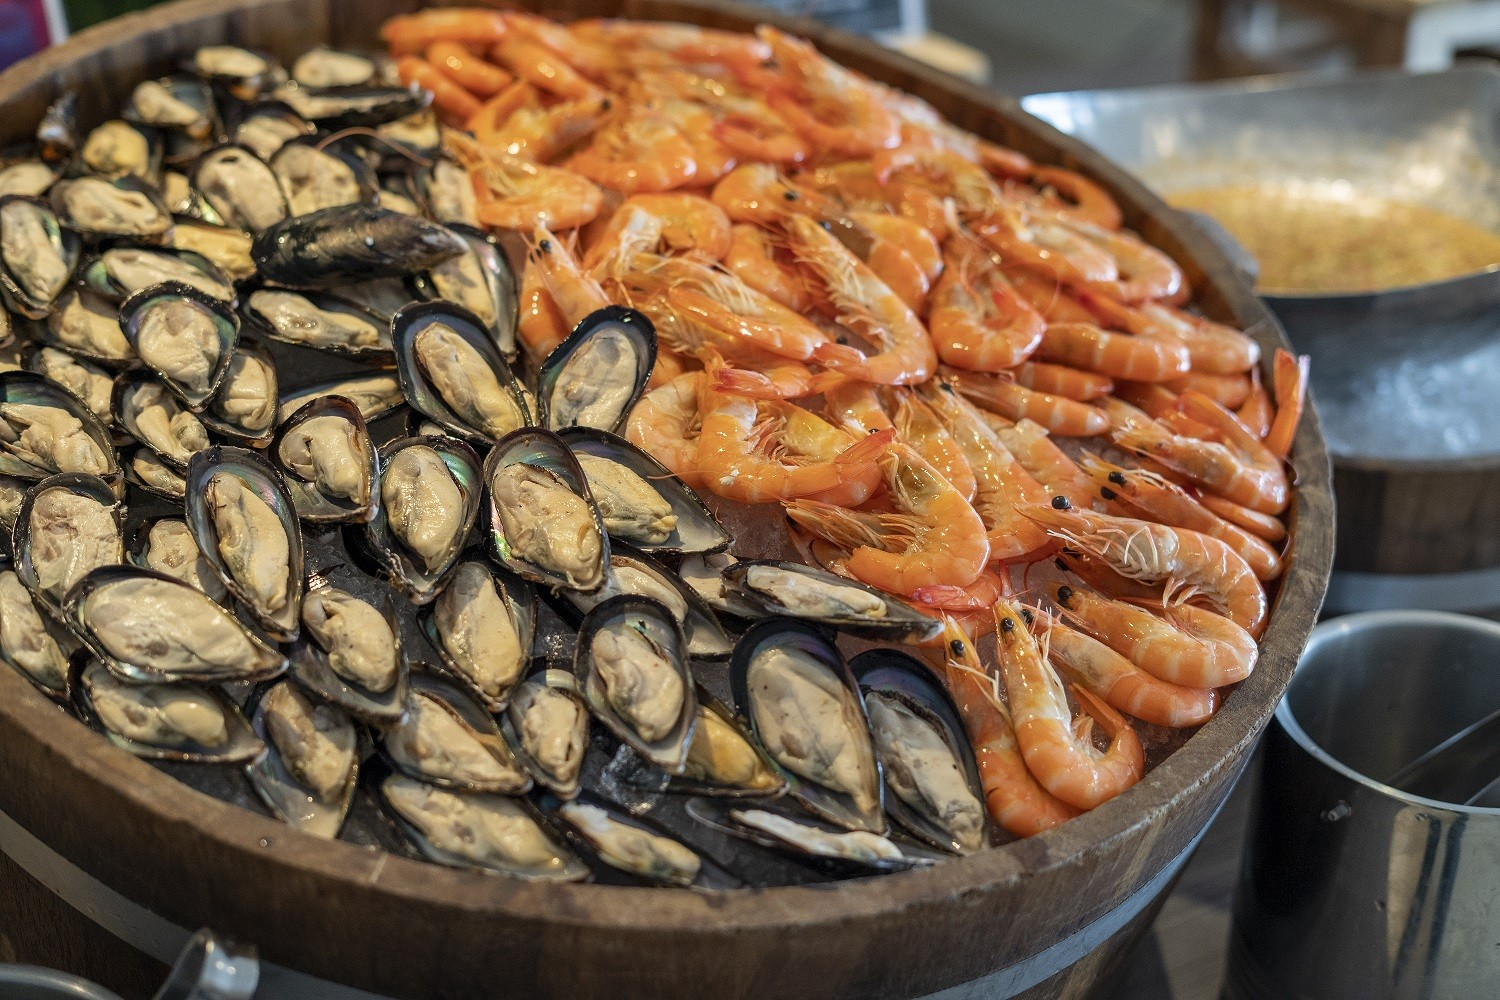 Recommended River Prawn Dinner Buffet in Bangkok